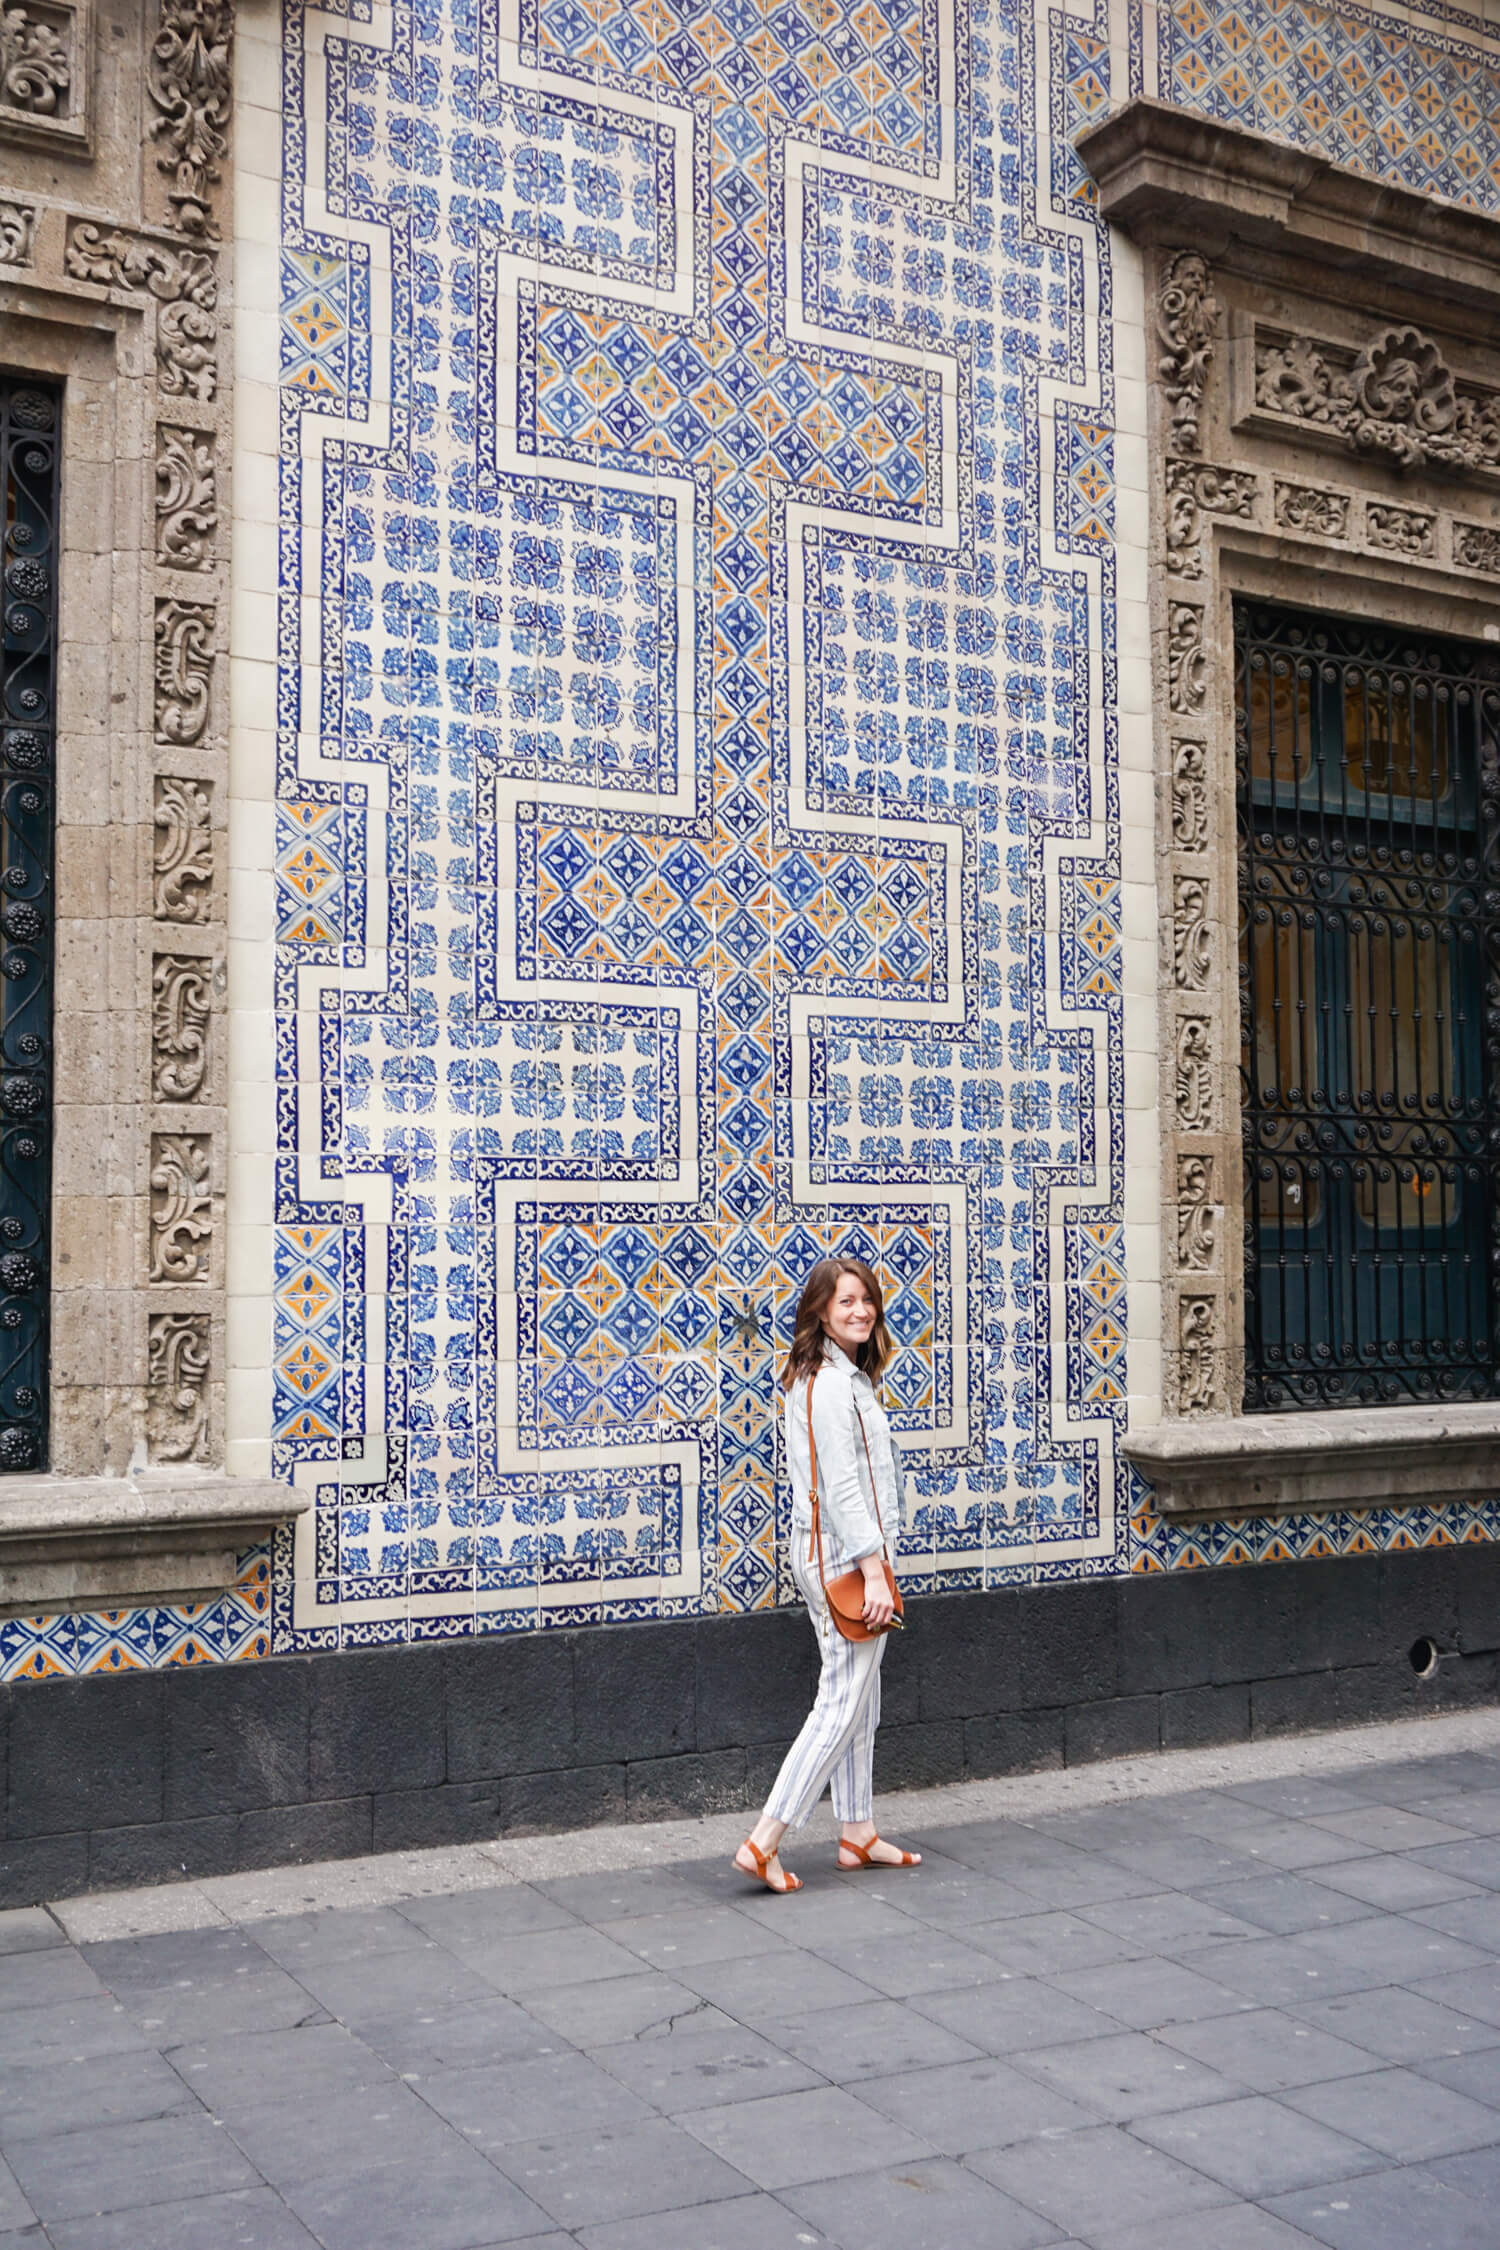 Casa De Los Azulejos En Mexico Of Visiting Mexico City What To See Eat And Do And